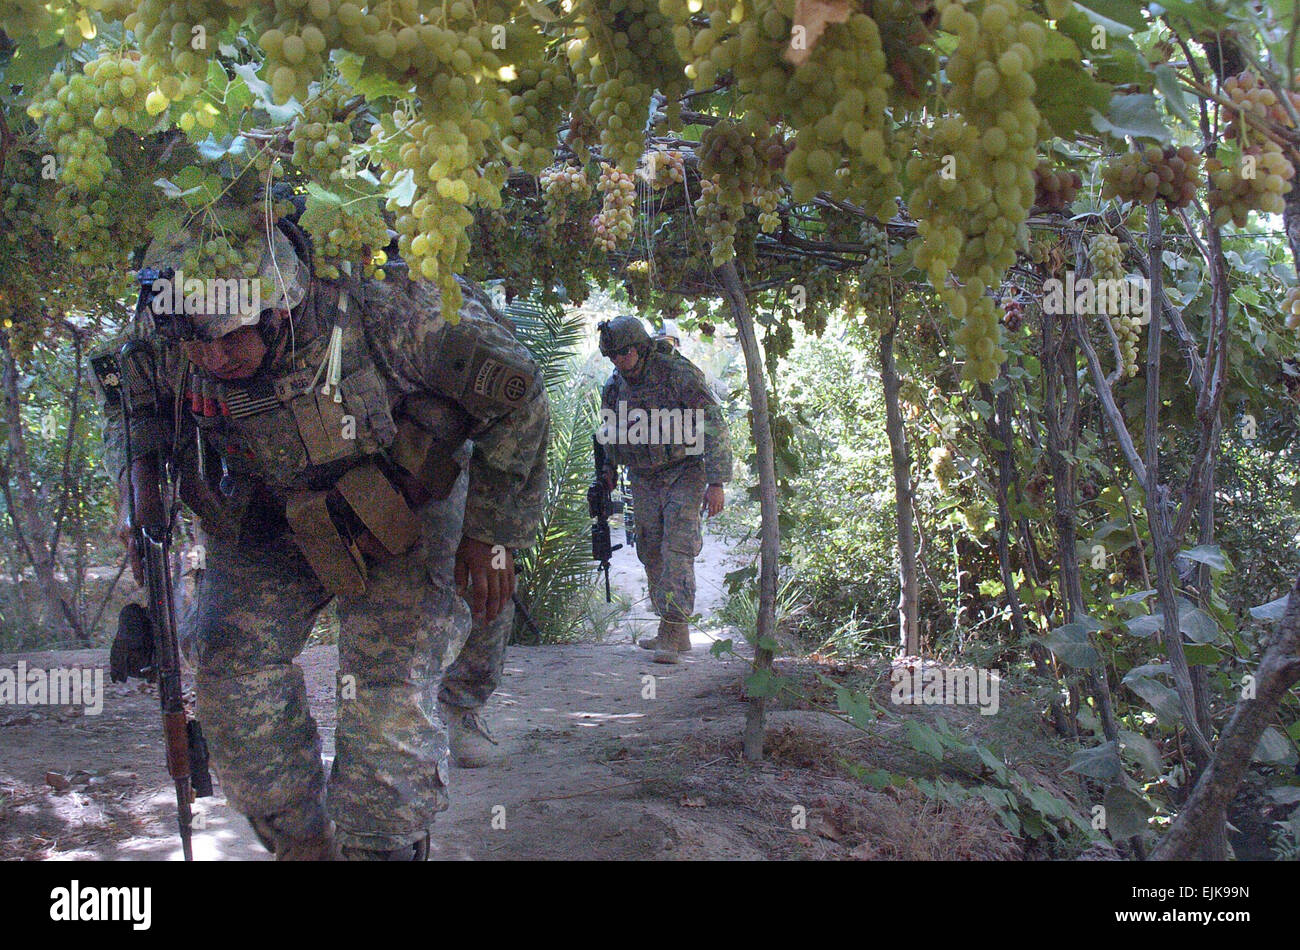 US Army Soldiers From Bravo Company 1st Battalion 505th Parachute Infantry Regiment 82nd Airborne Division Search A Vineyard In The Diyala River Valley